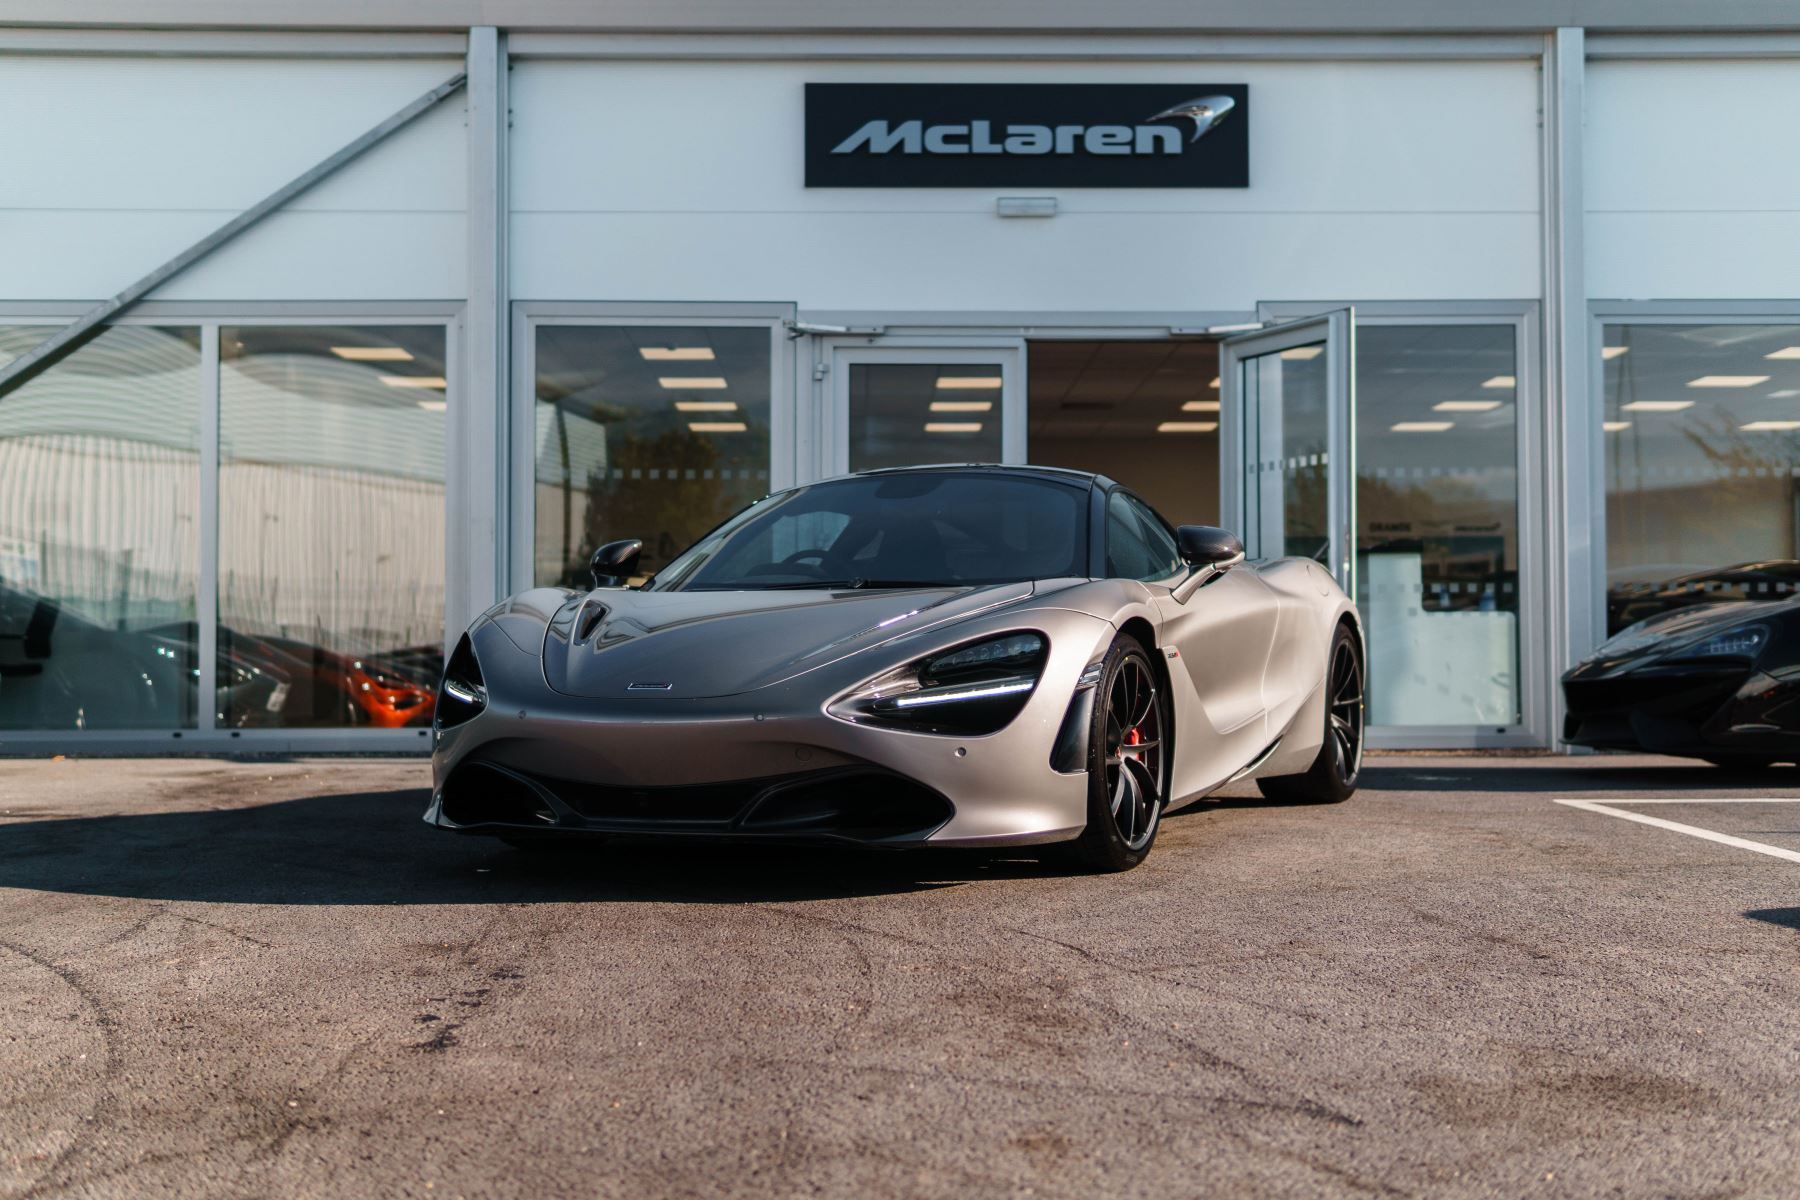 McLaren 720S V8 Performance SSG 4.0 Automatic 2 door Coupe (17MY) image